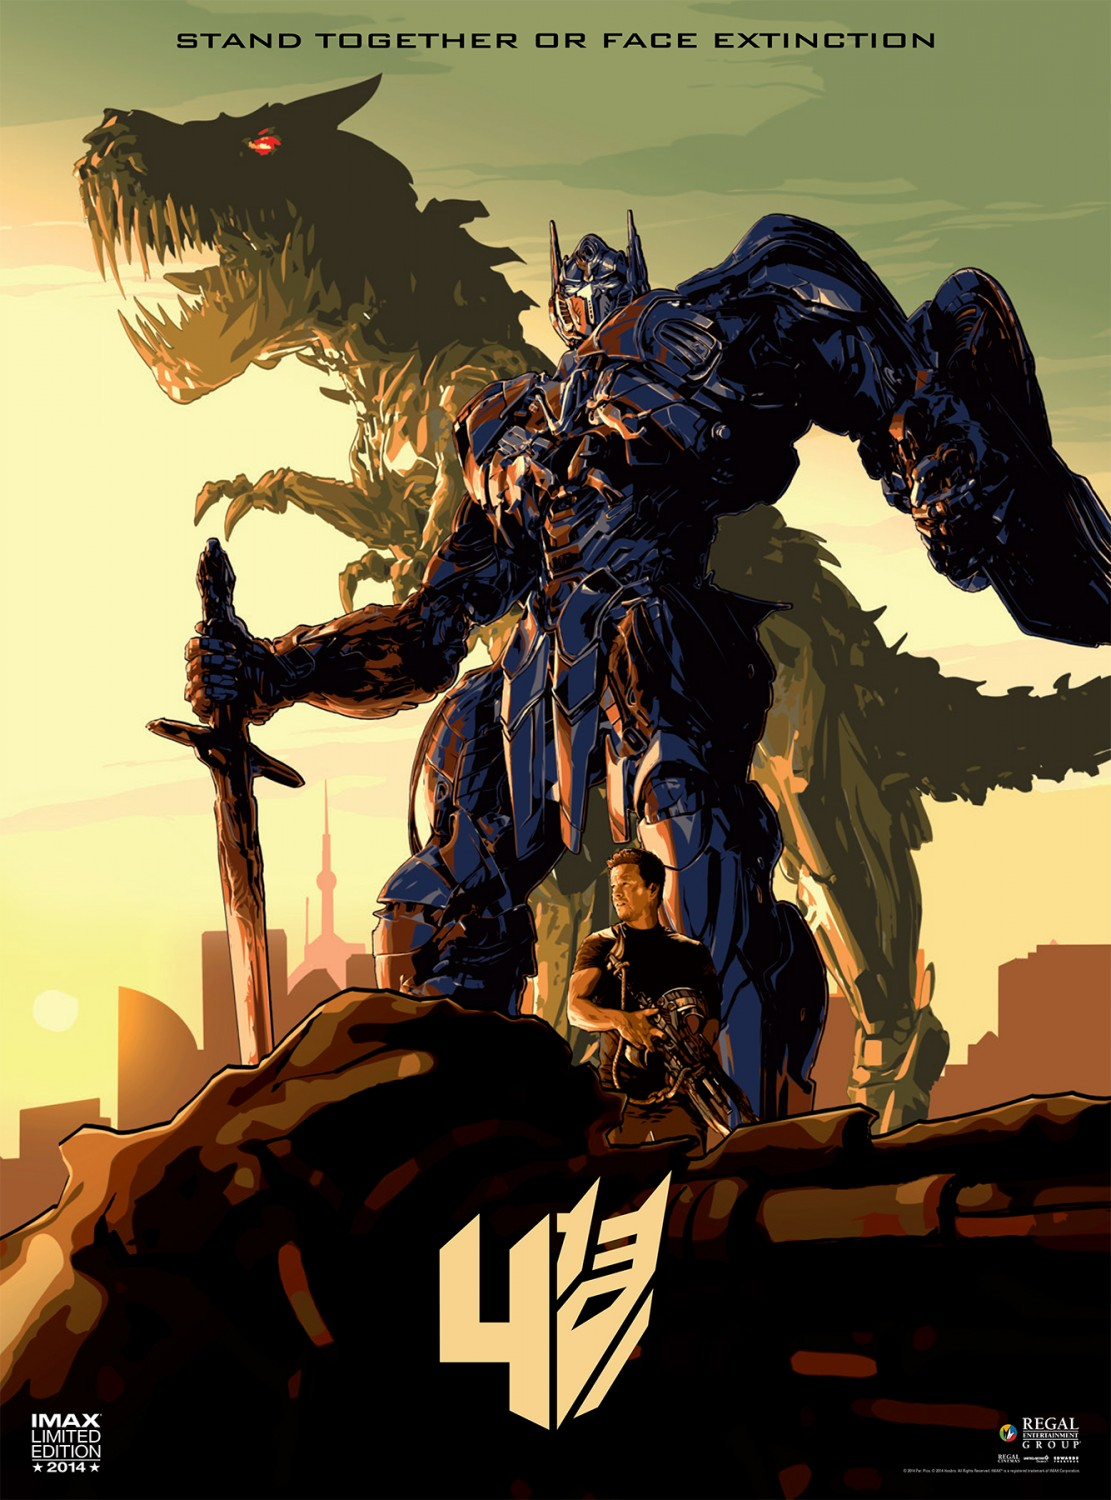 the gallery for gt transformers 4 age of extinction poster